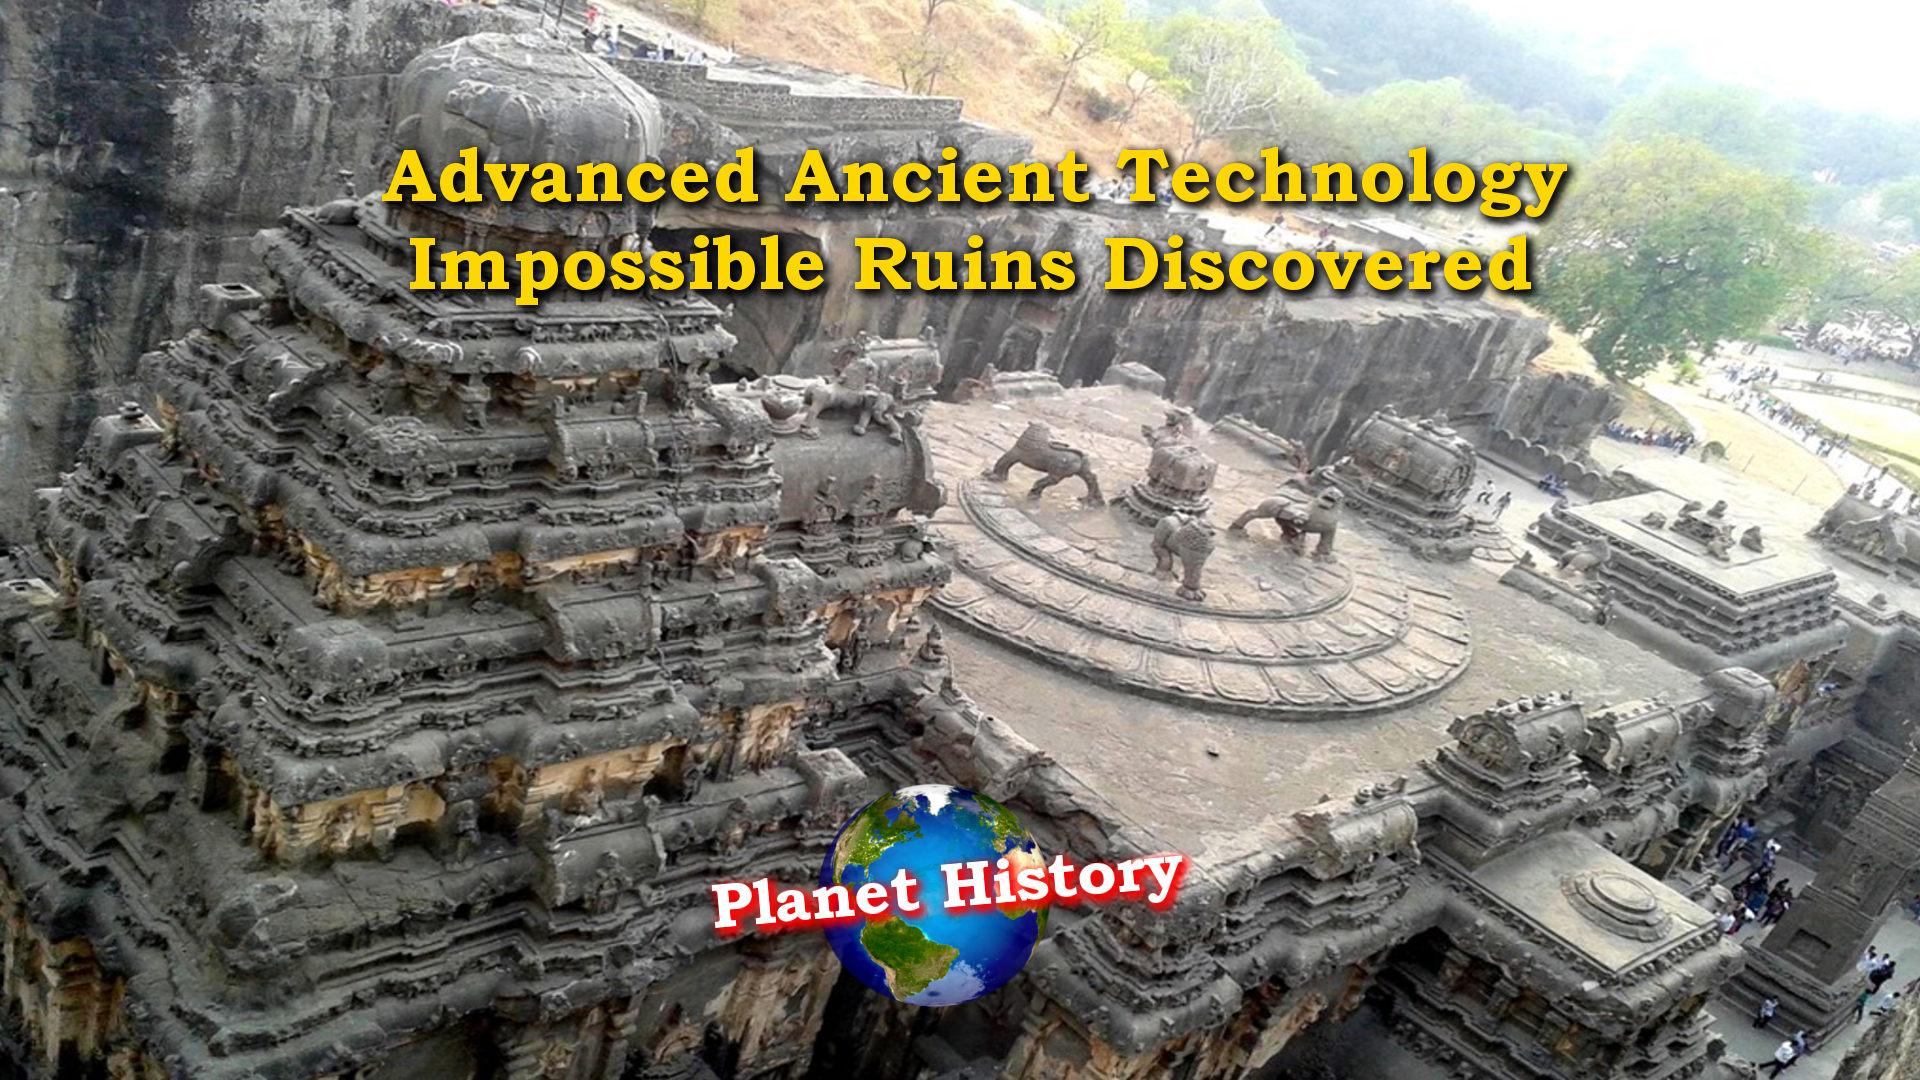 Advanced Ancient Technology - Impossible Ruins Discovered